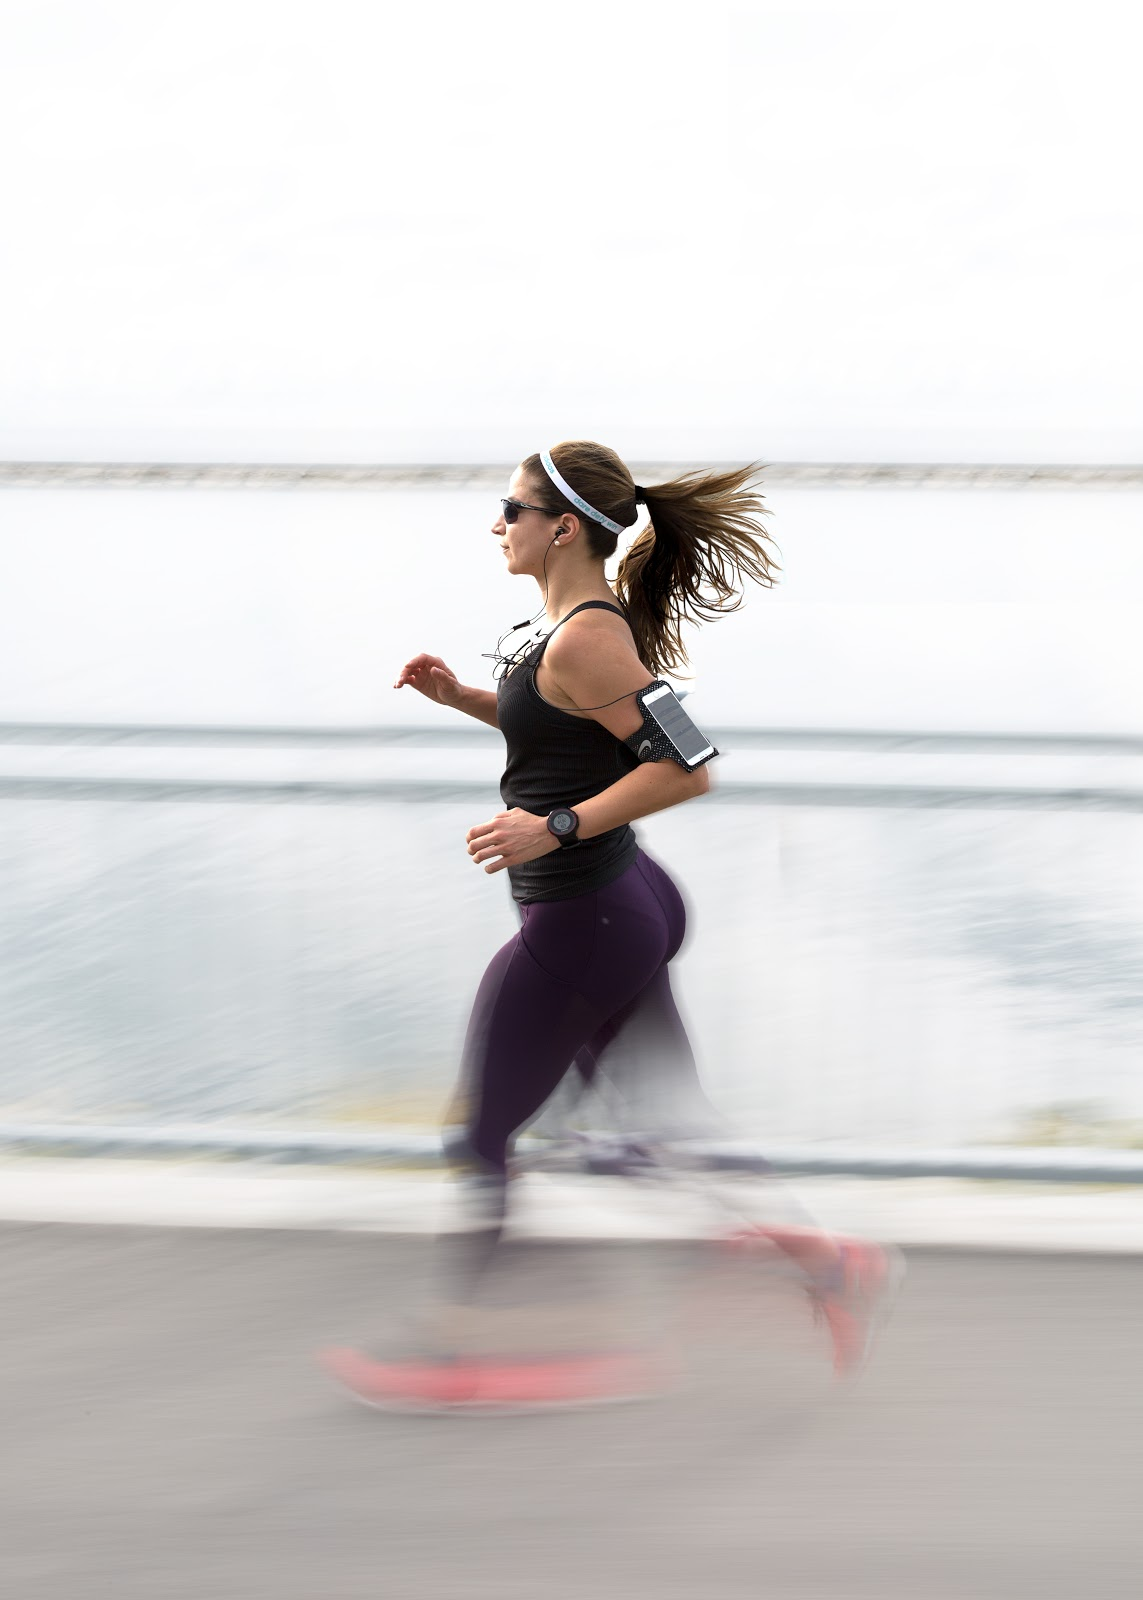 A female running outdoors